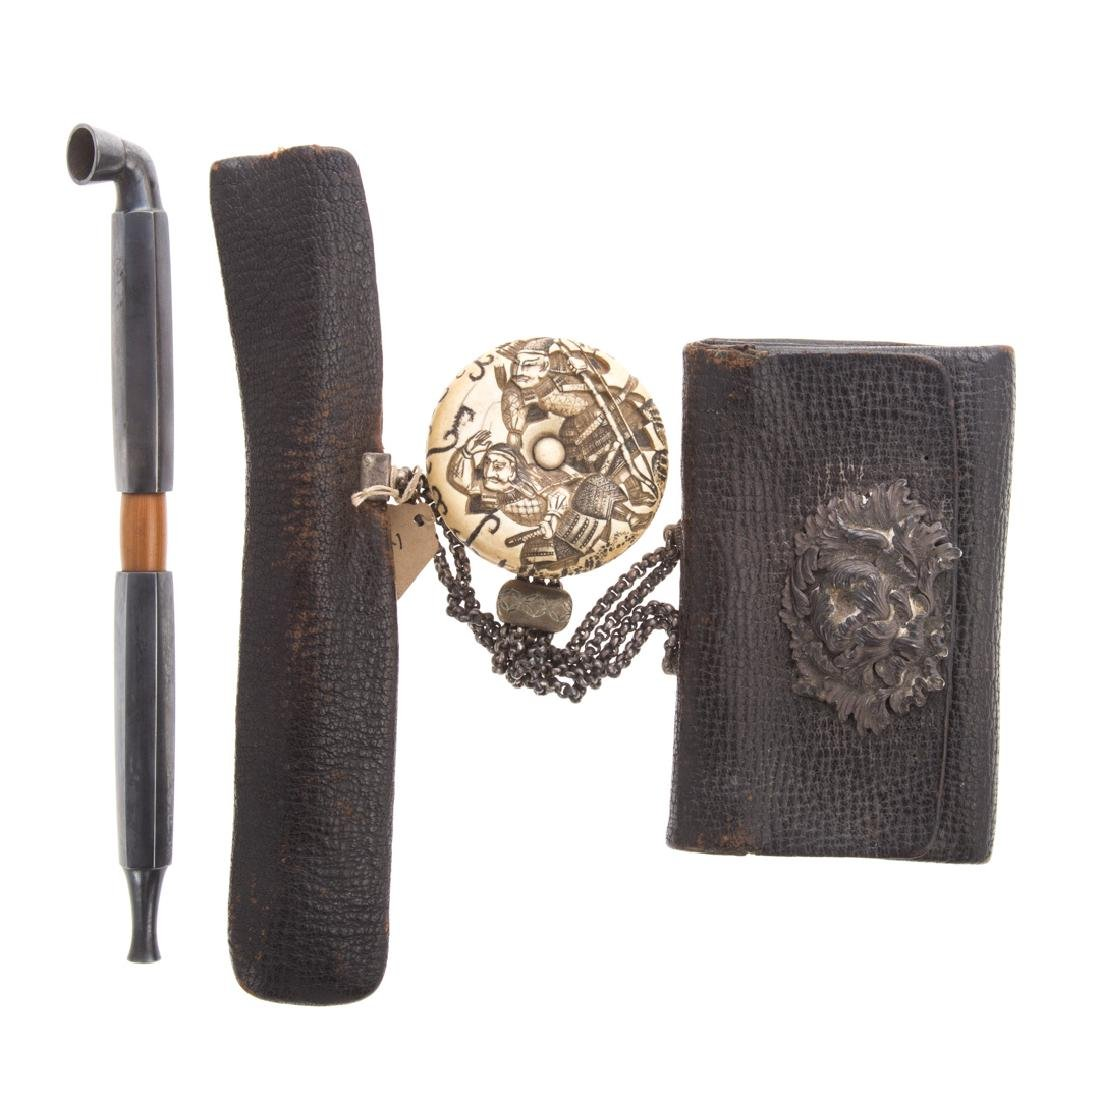 Japanese leather/silver tobacco pouch & pipe